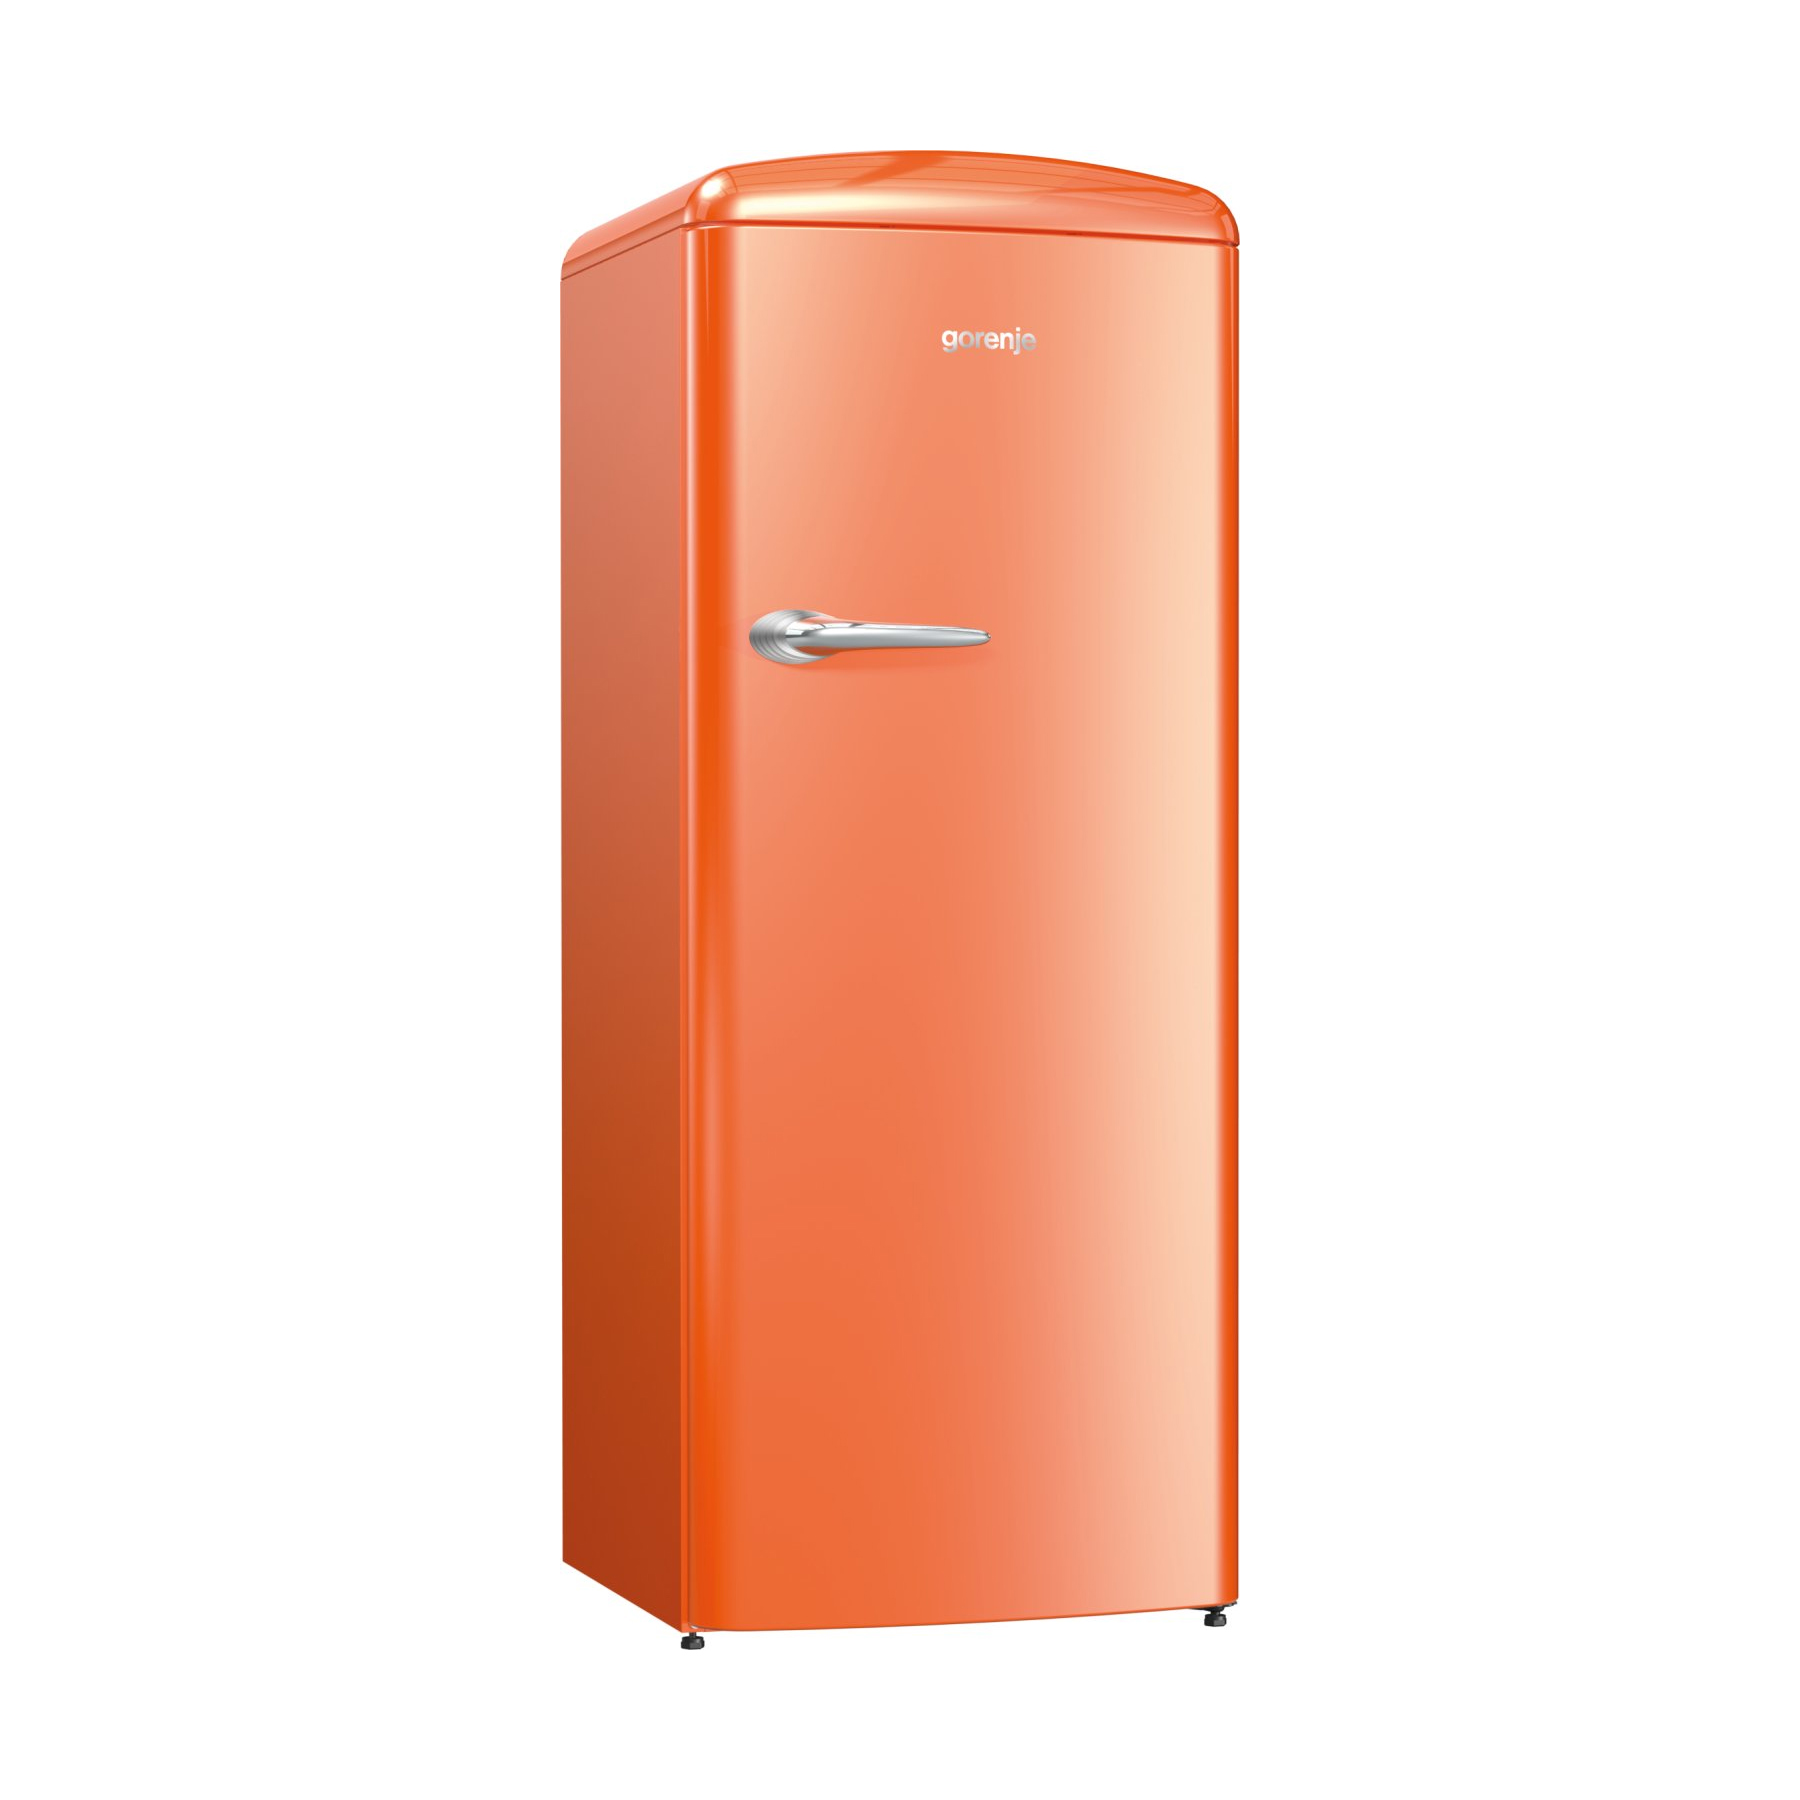 Retro Kühlschrank Orange Gorenje Orb 153 O Juicy Orange Bei Notebooksbilliger De